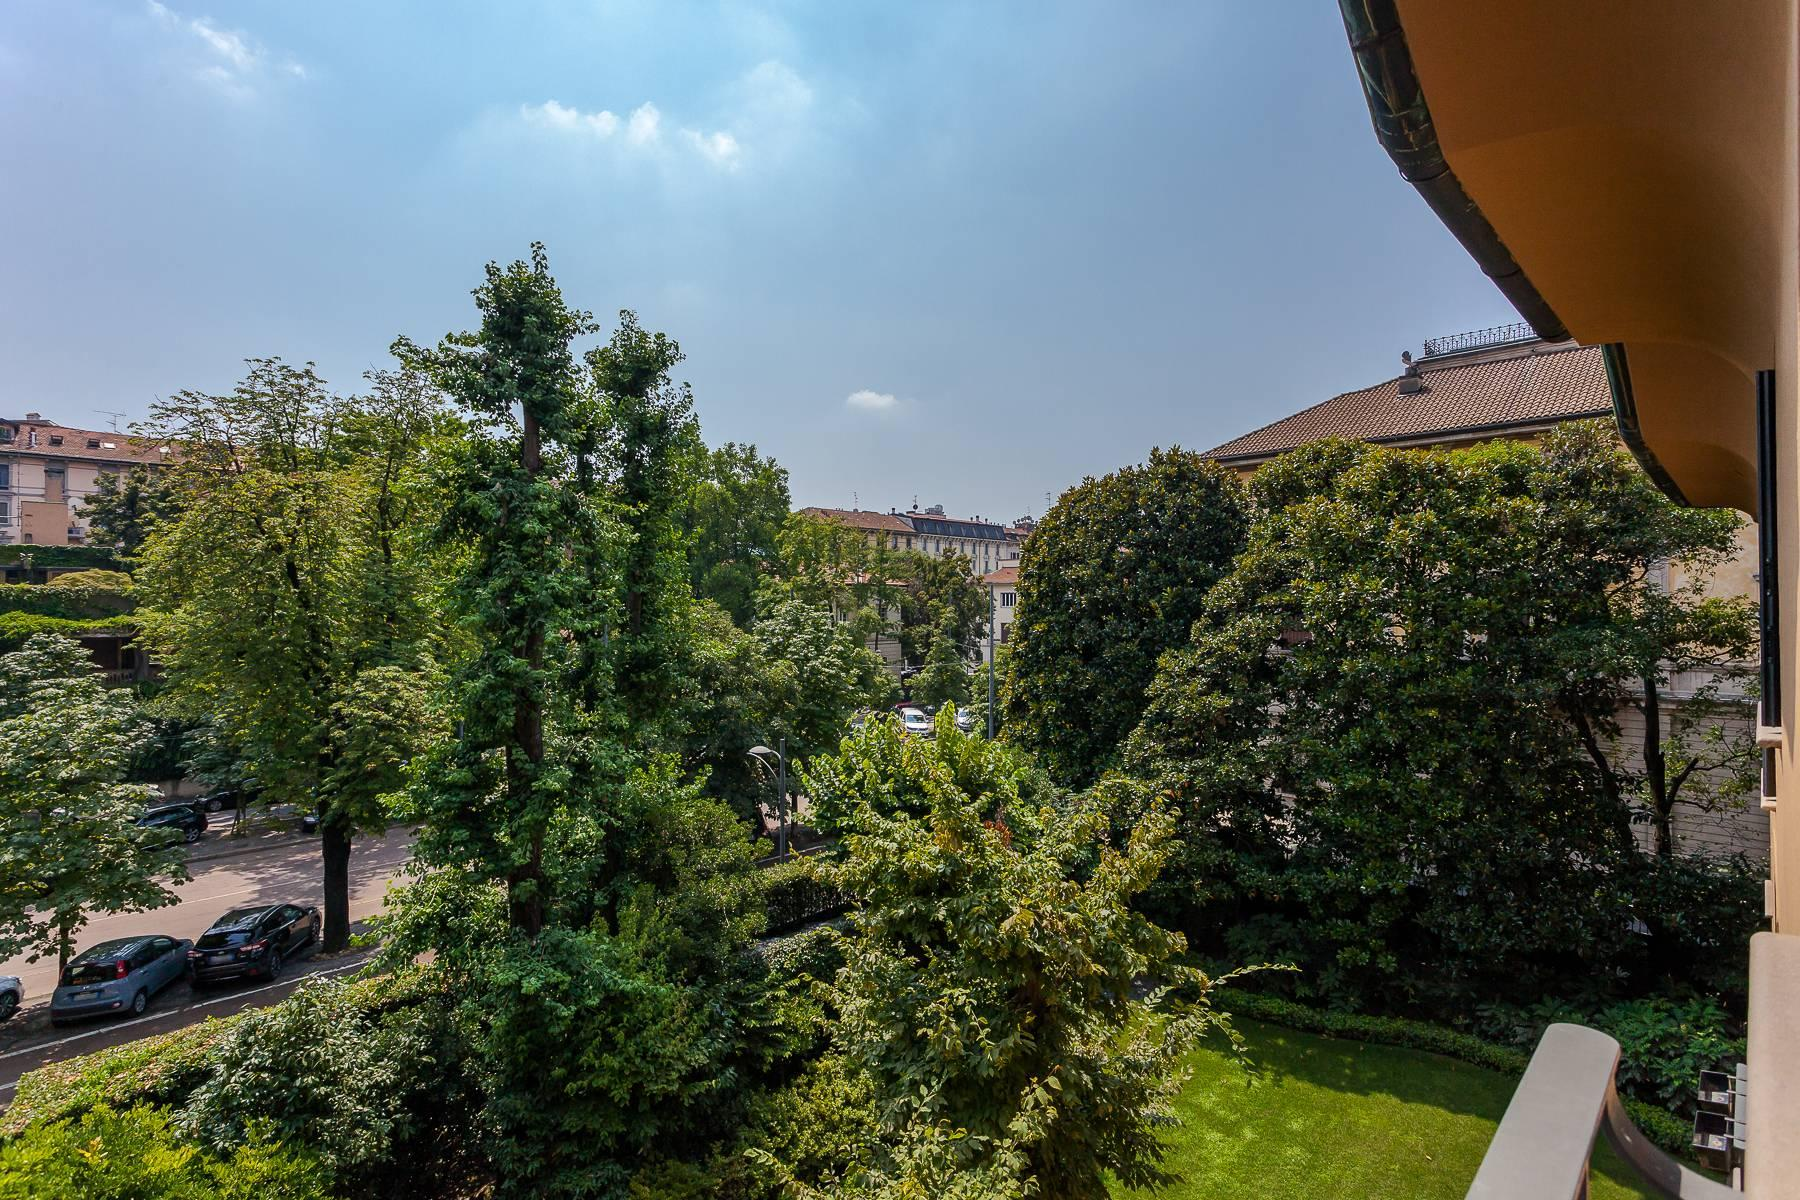 Inviting 482 sqm property with a view of the greenery in the XX Settembre / Tamburini area - 29